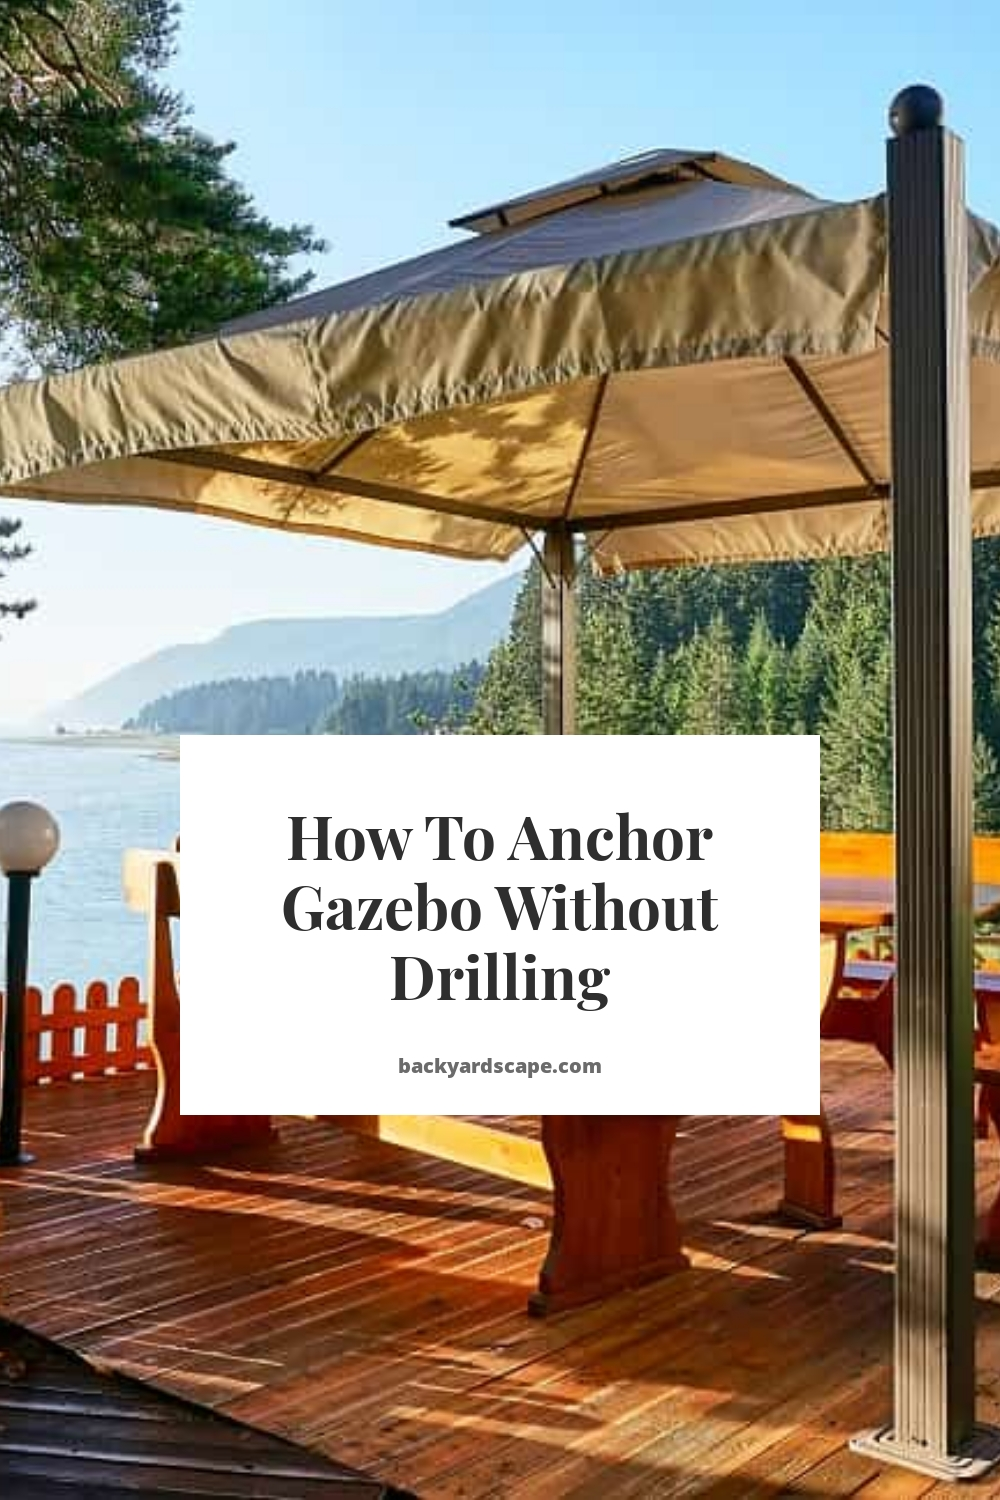 How To Anchor Gazebo Without Drilling